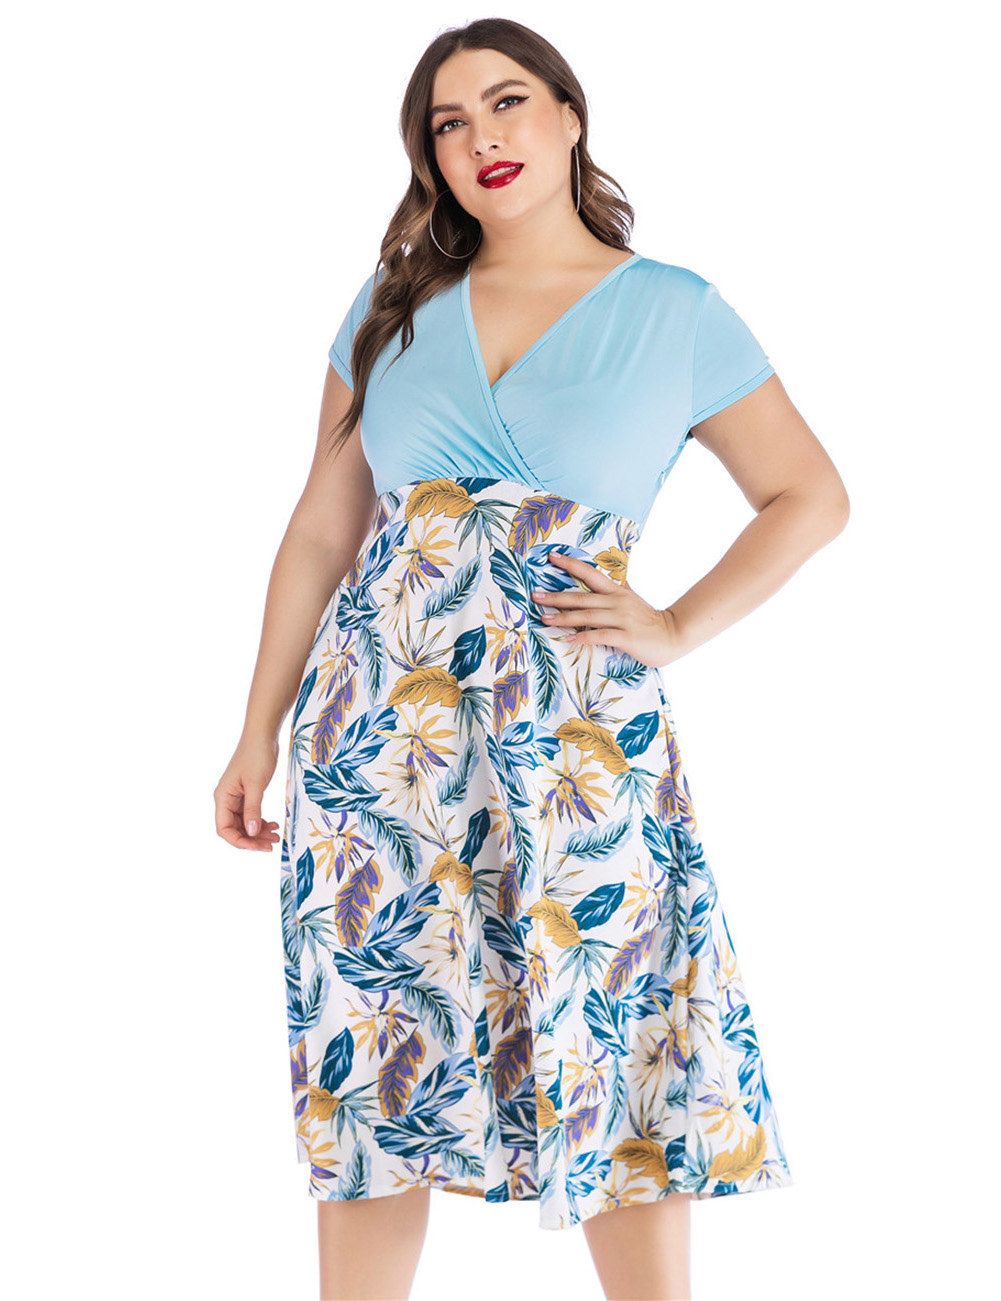 //cdn.affectcloud.com/feelingirldress/upload/imgs/2019-04-30/I195300-BU3/I195300-BU3.jpg